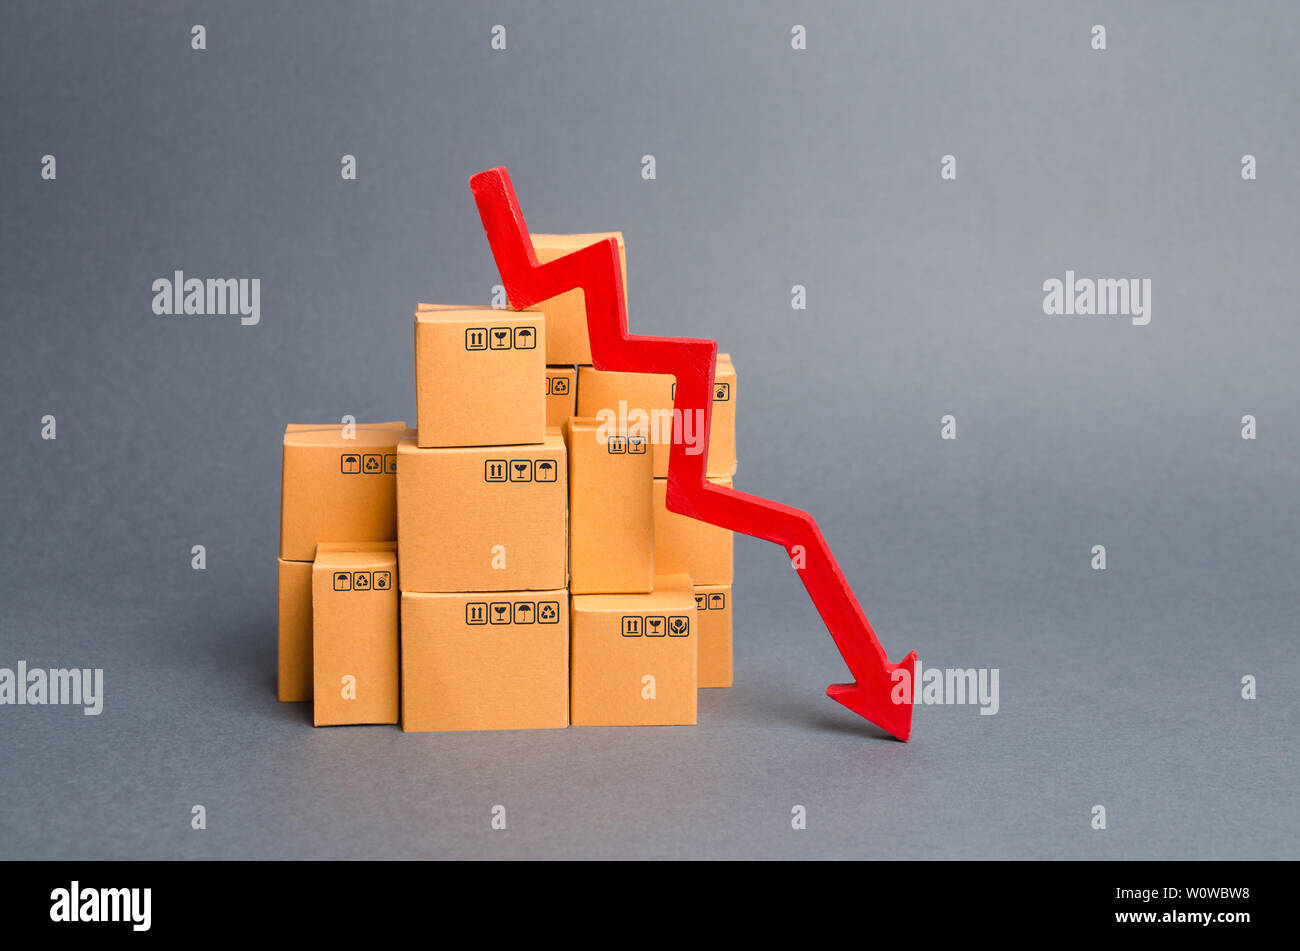 Lots of cardboard boxes and a red arrow down. Concept drop in industrial production, sales fall. economic downturn. Unfavorable business conditions, d - Stock Image